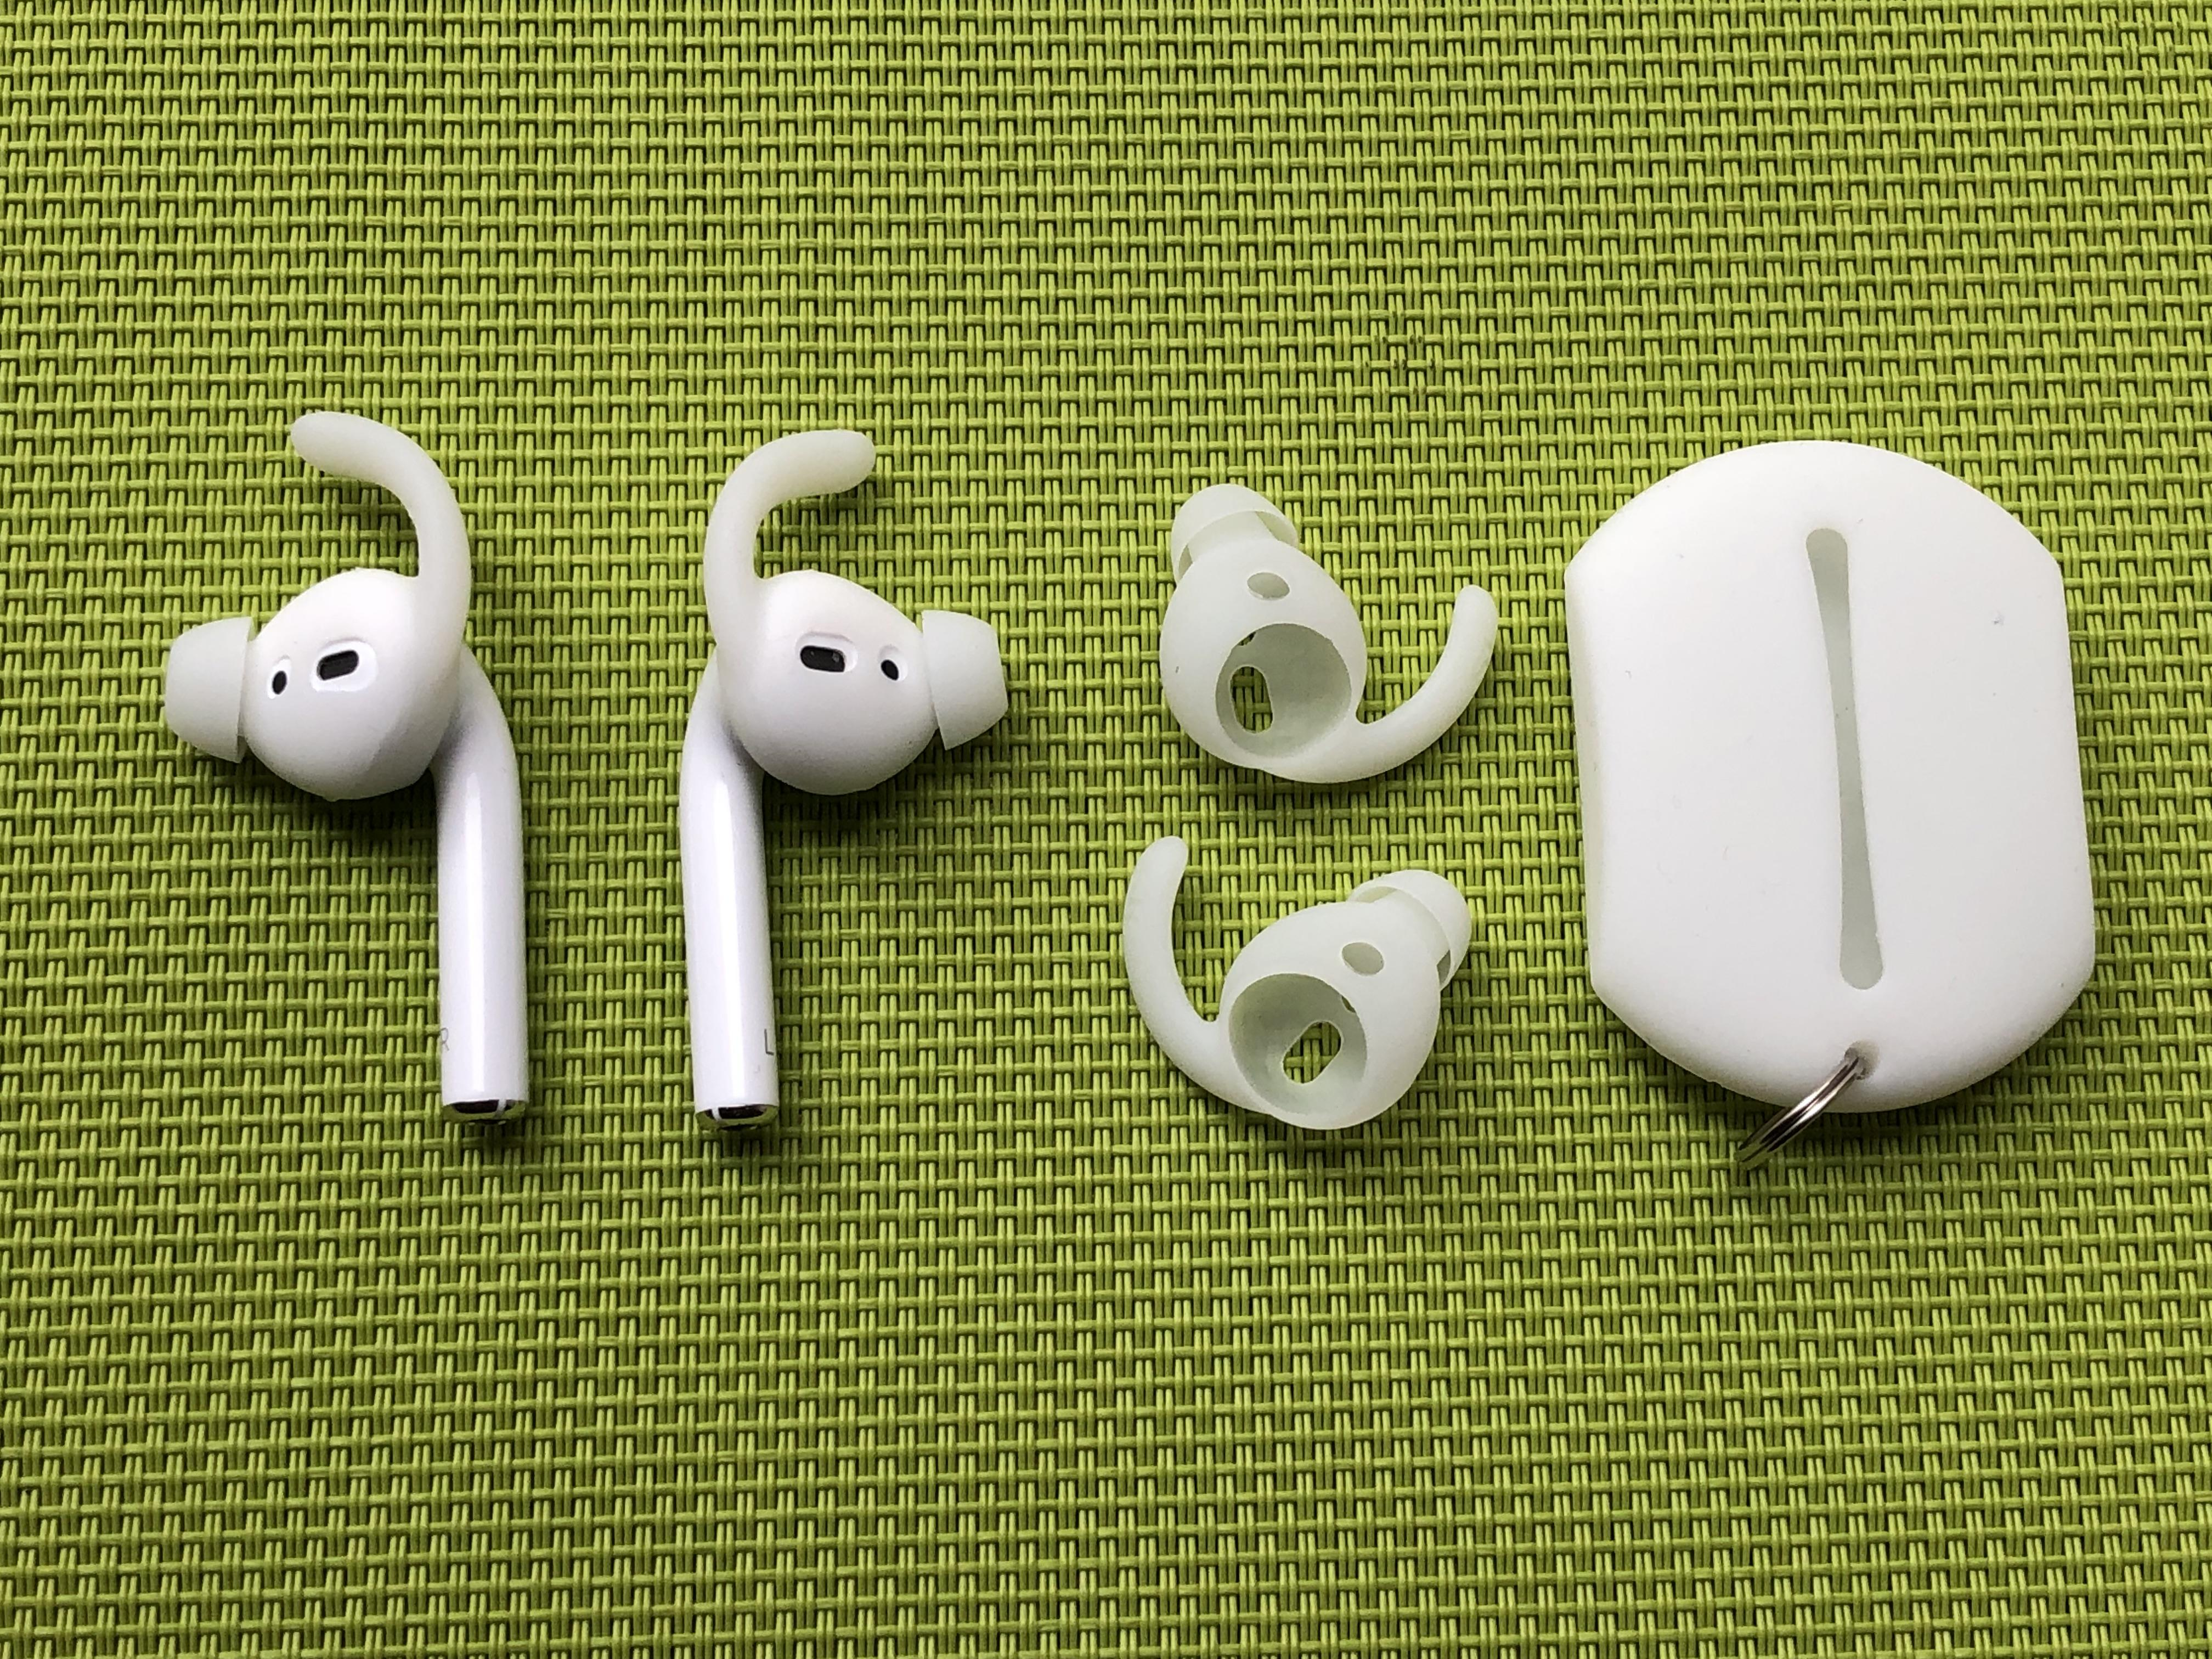 <p>With an earhook, your AirPods aren't going anywhere.&nbsp;</p>